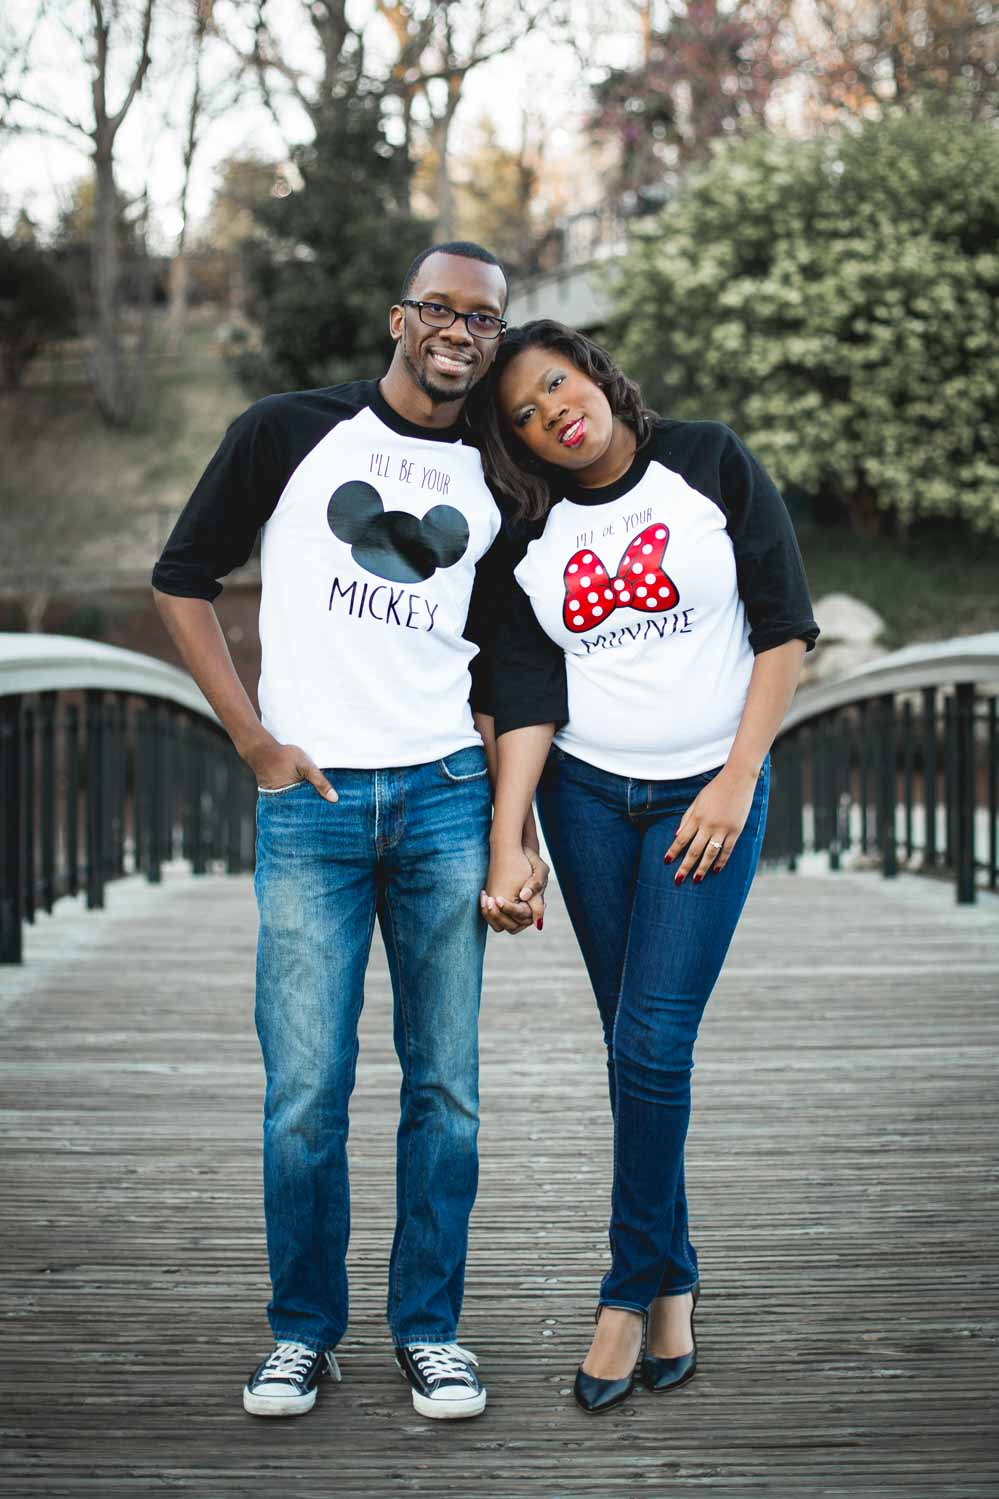 couple-wears-cute-matching-outfit-for-engagement-photos.jpg